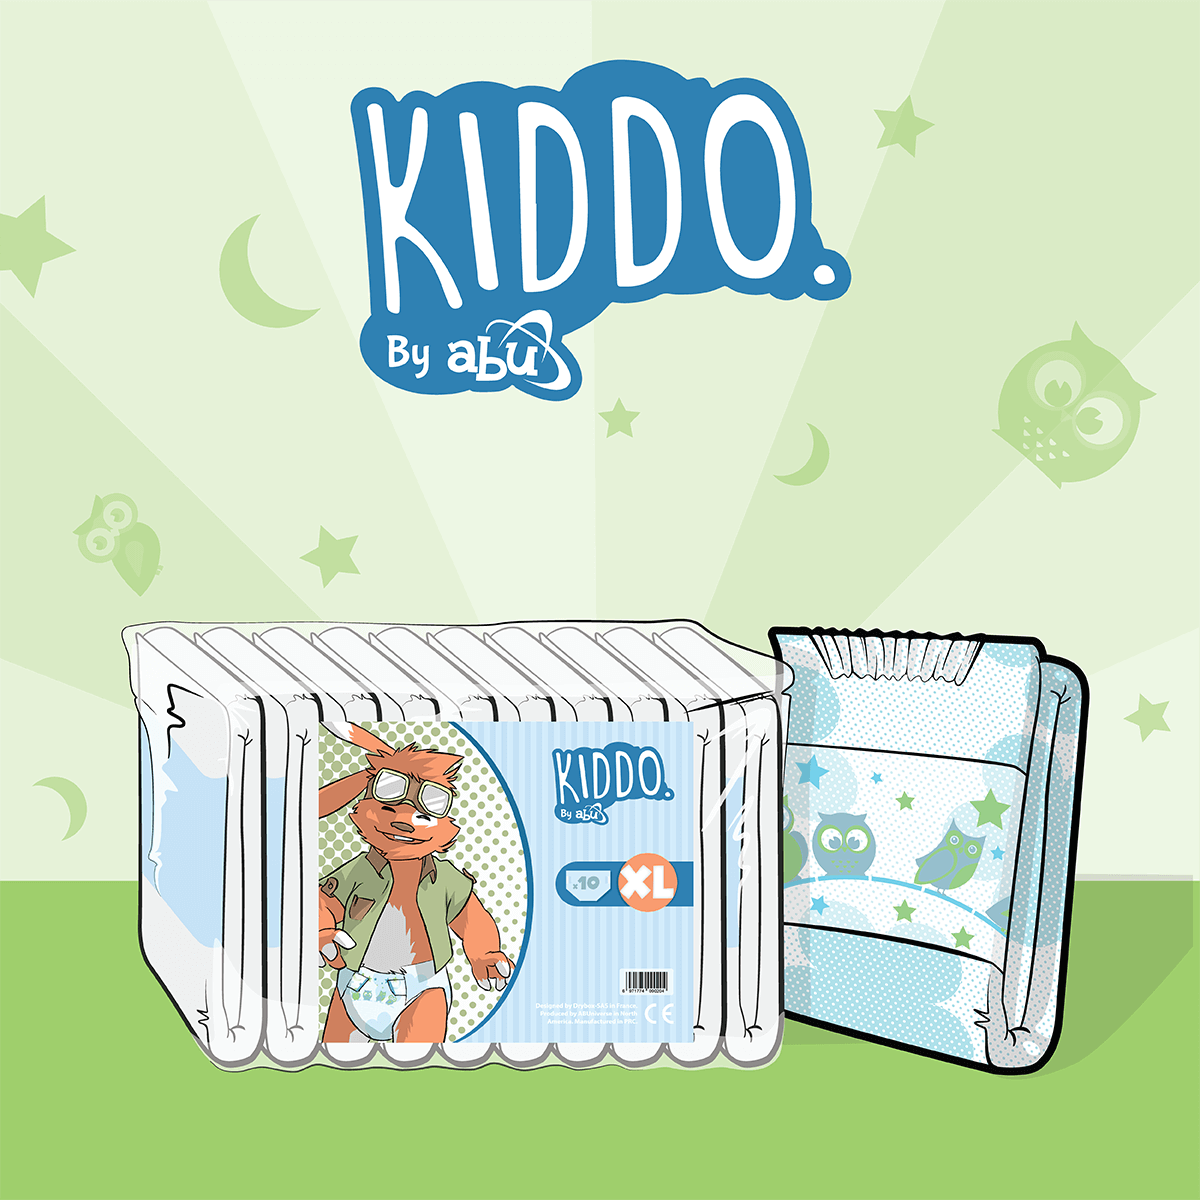 kiddo_feature_image